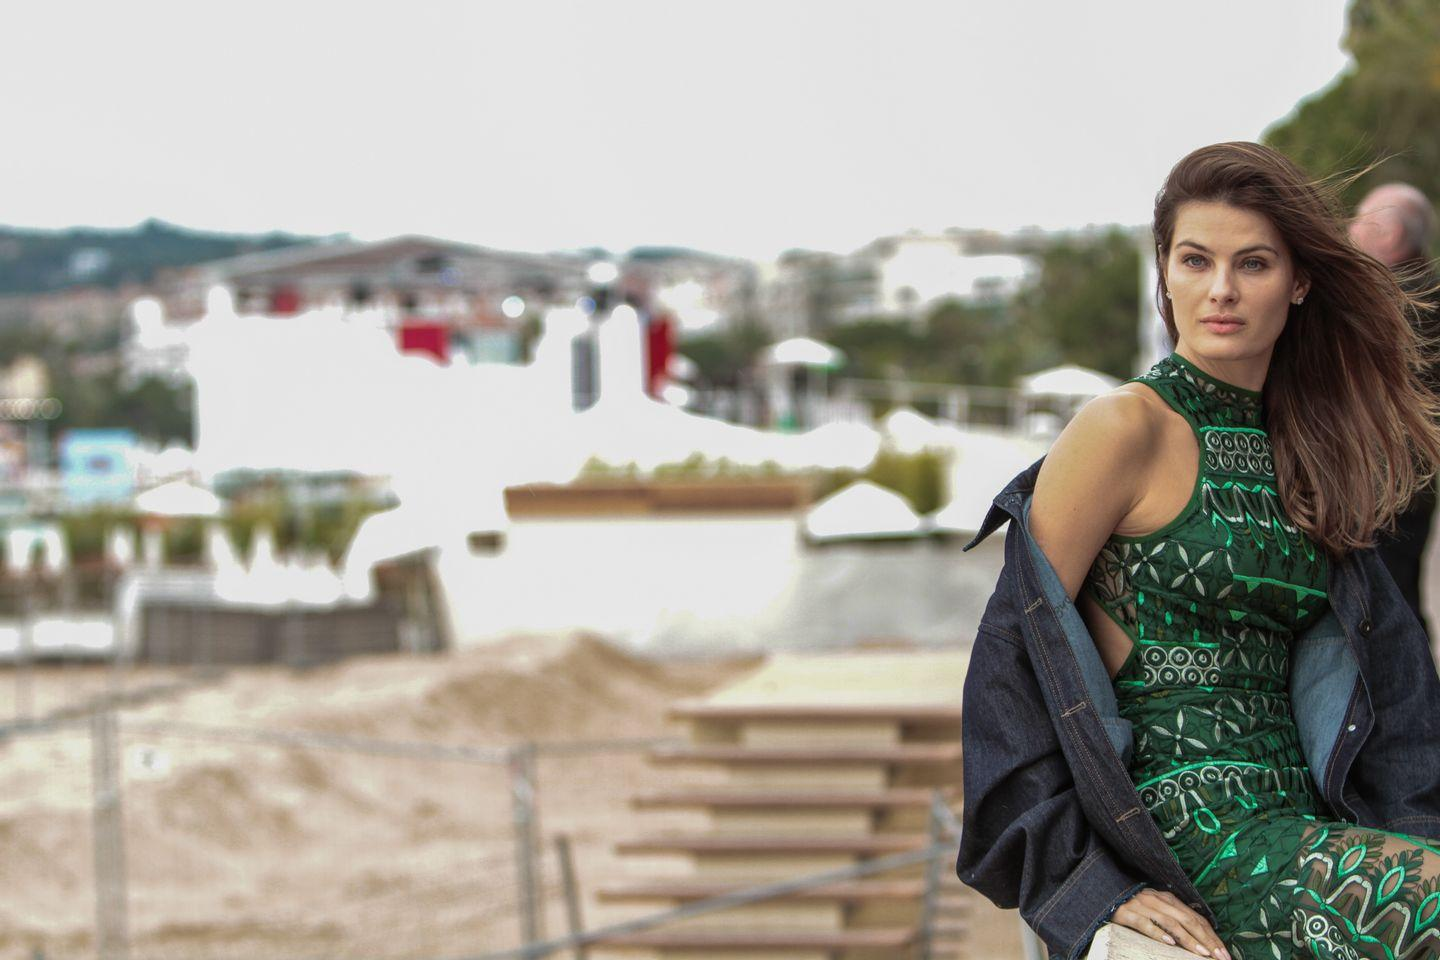 Izabel Fontana spotted during a photo shoot with a green dress